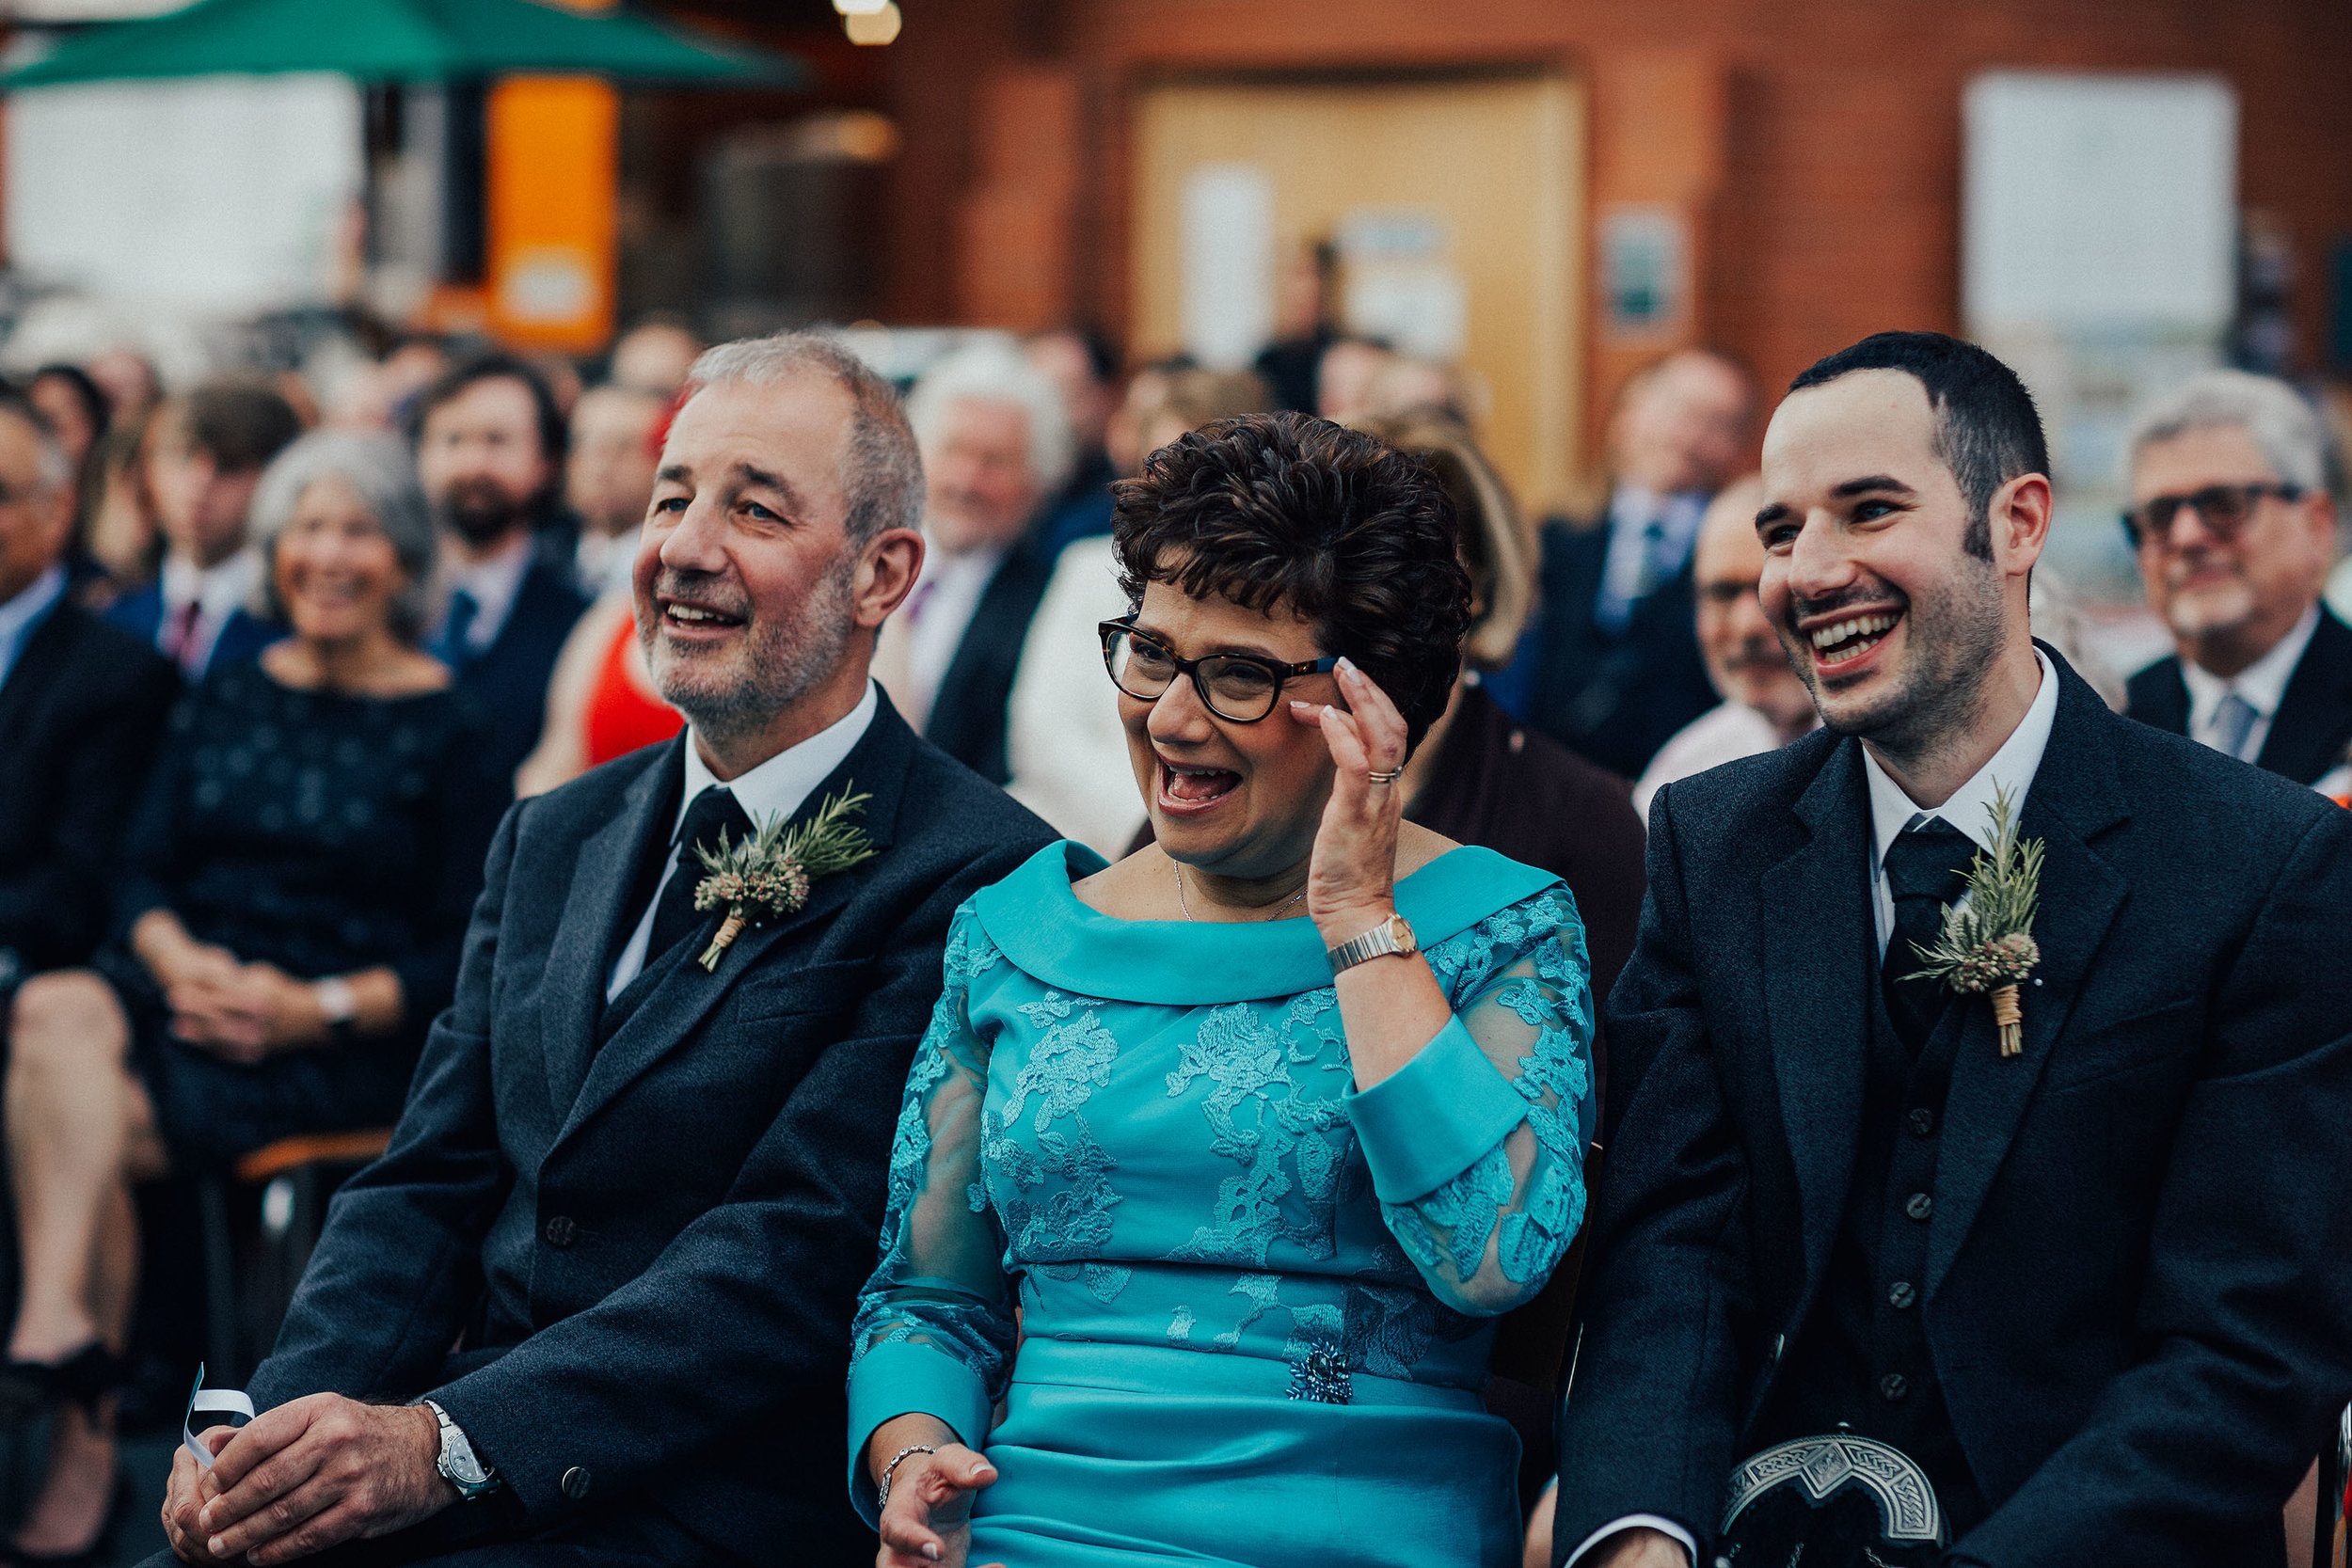 ALTERNATIVE_JEWISH_WEDDING_WEST_ON_THE_GREEN_GLASGOW_105.jpg